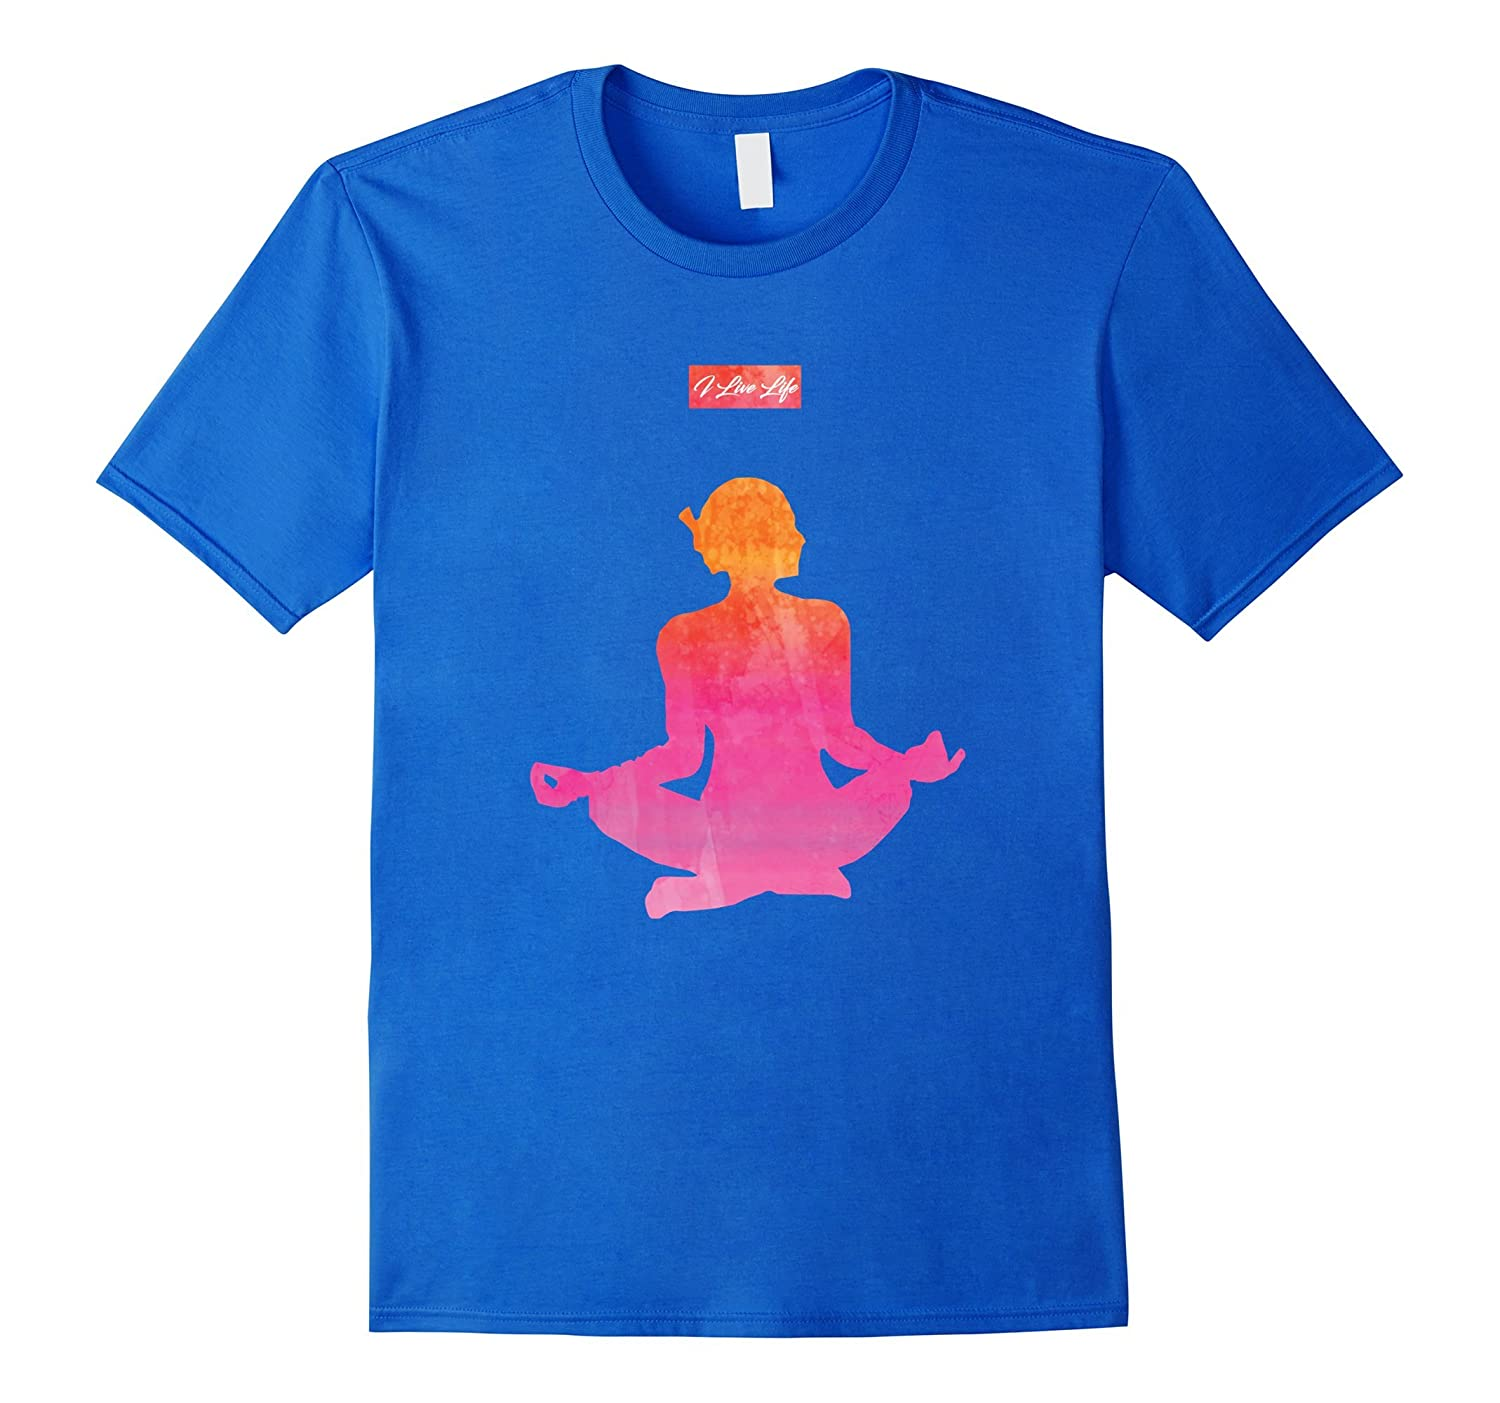 I Live Life Strong Yoga Pose Athletic Sports Workout Top